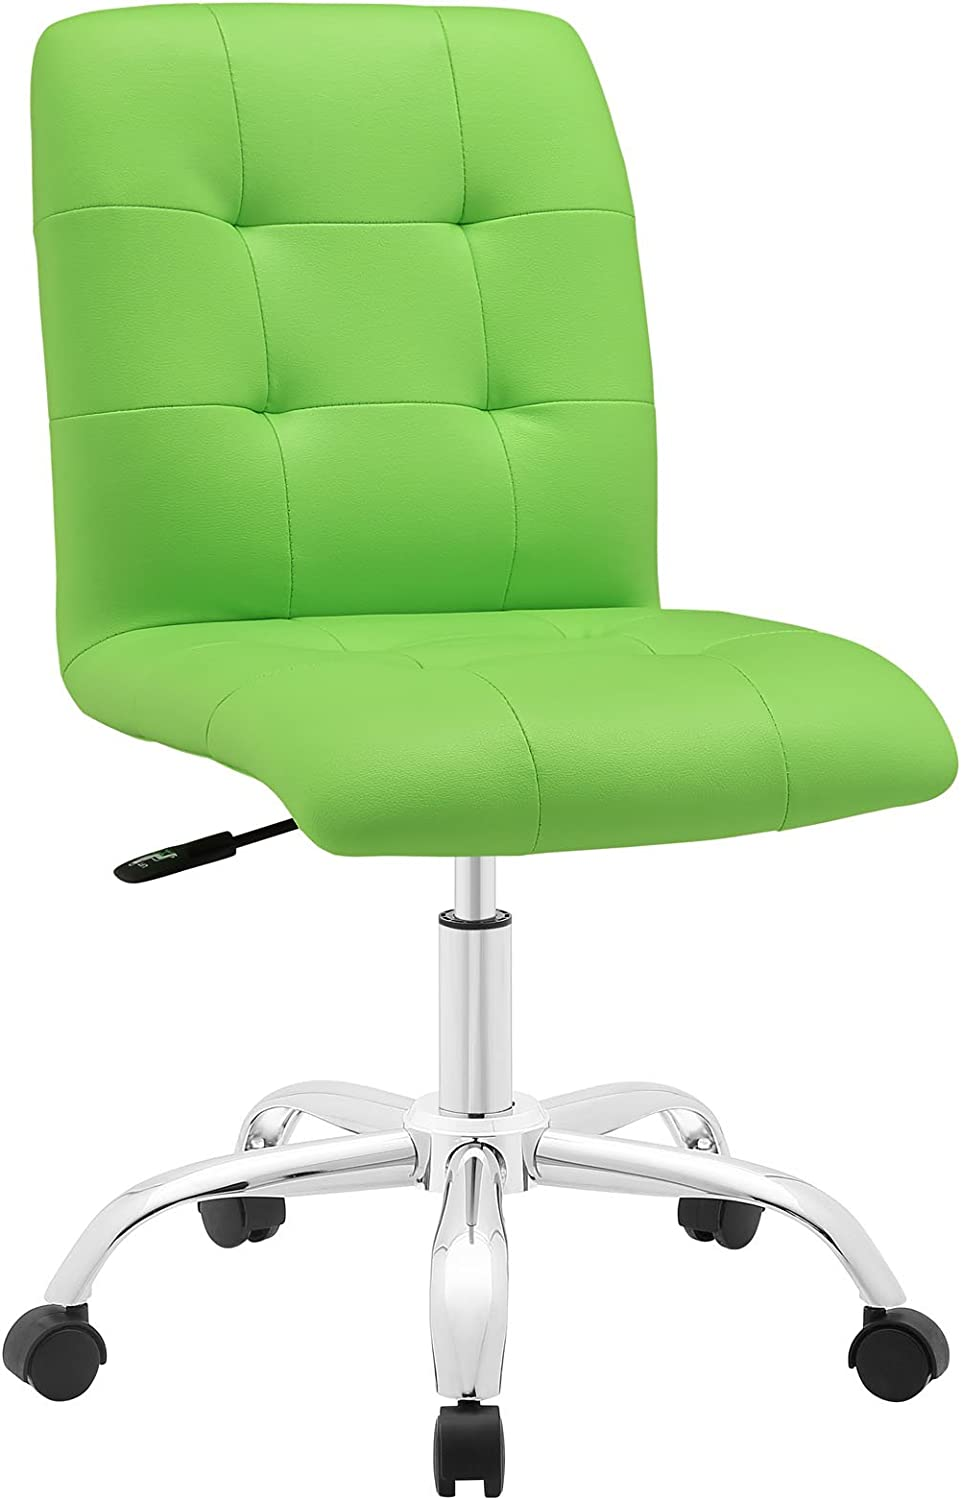 Modway Prim Mid Back Office Chair, Bright Green